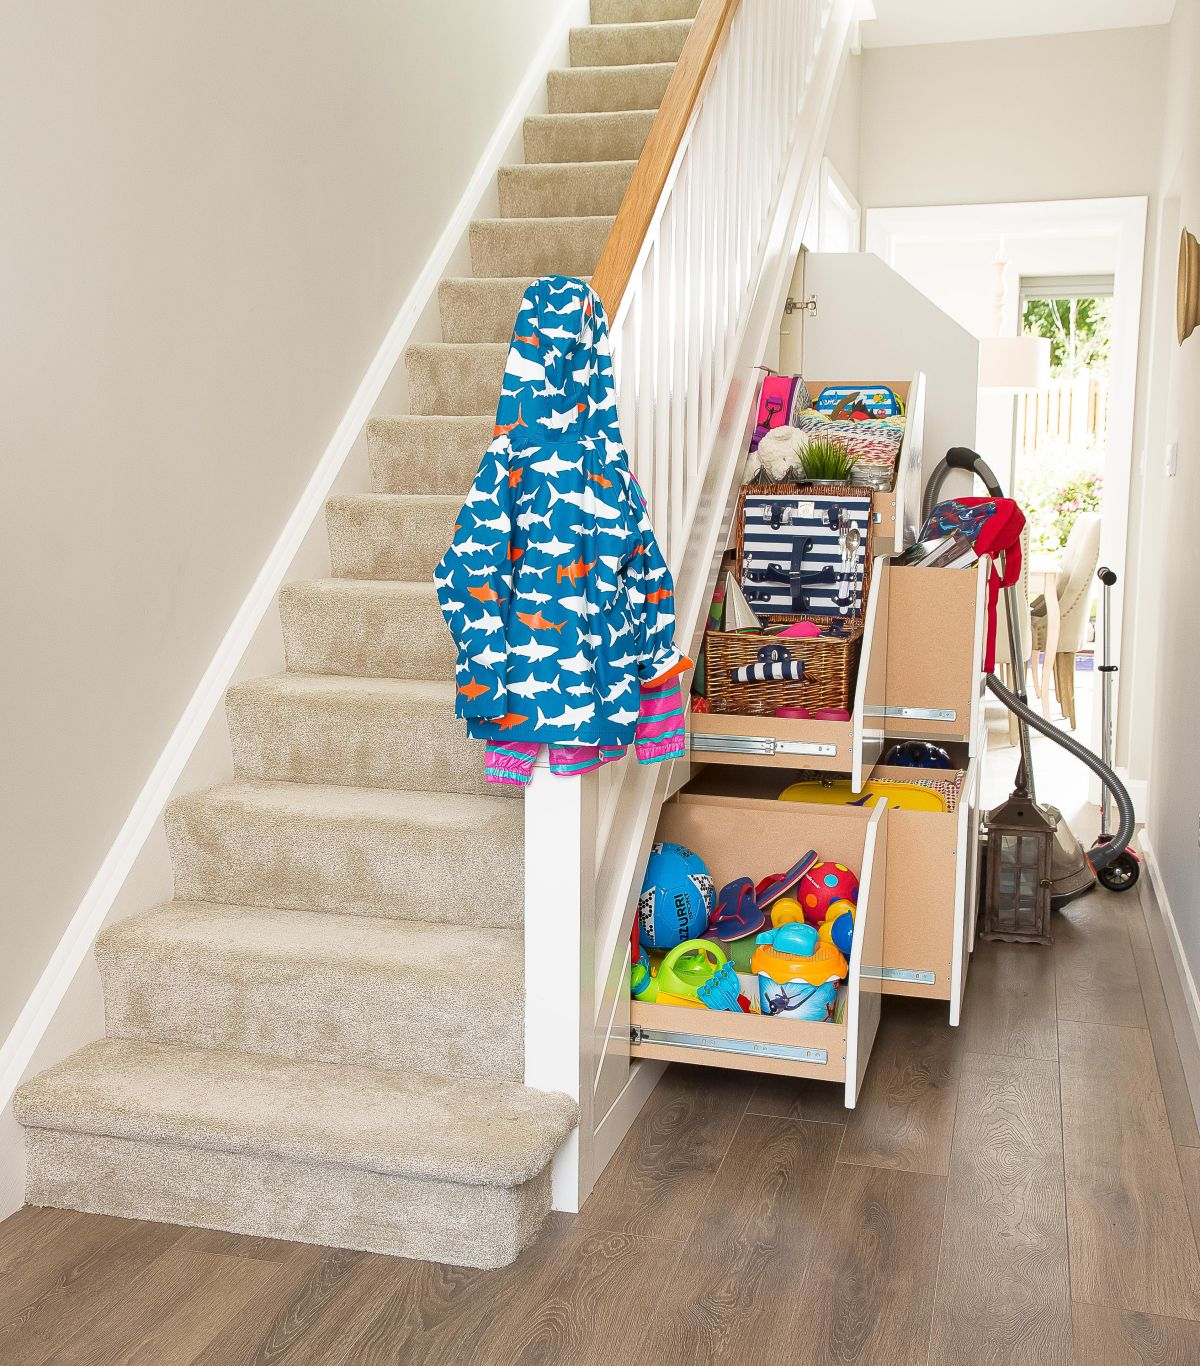 Under Stairs Storage 23 Handy Ways To Make The Most Of Your Space Real Homes